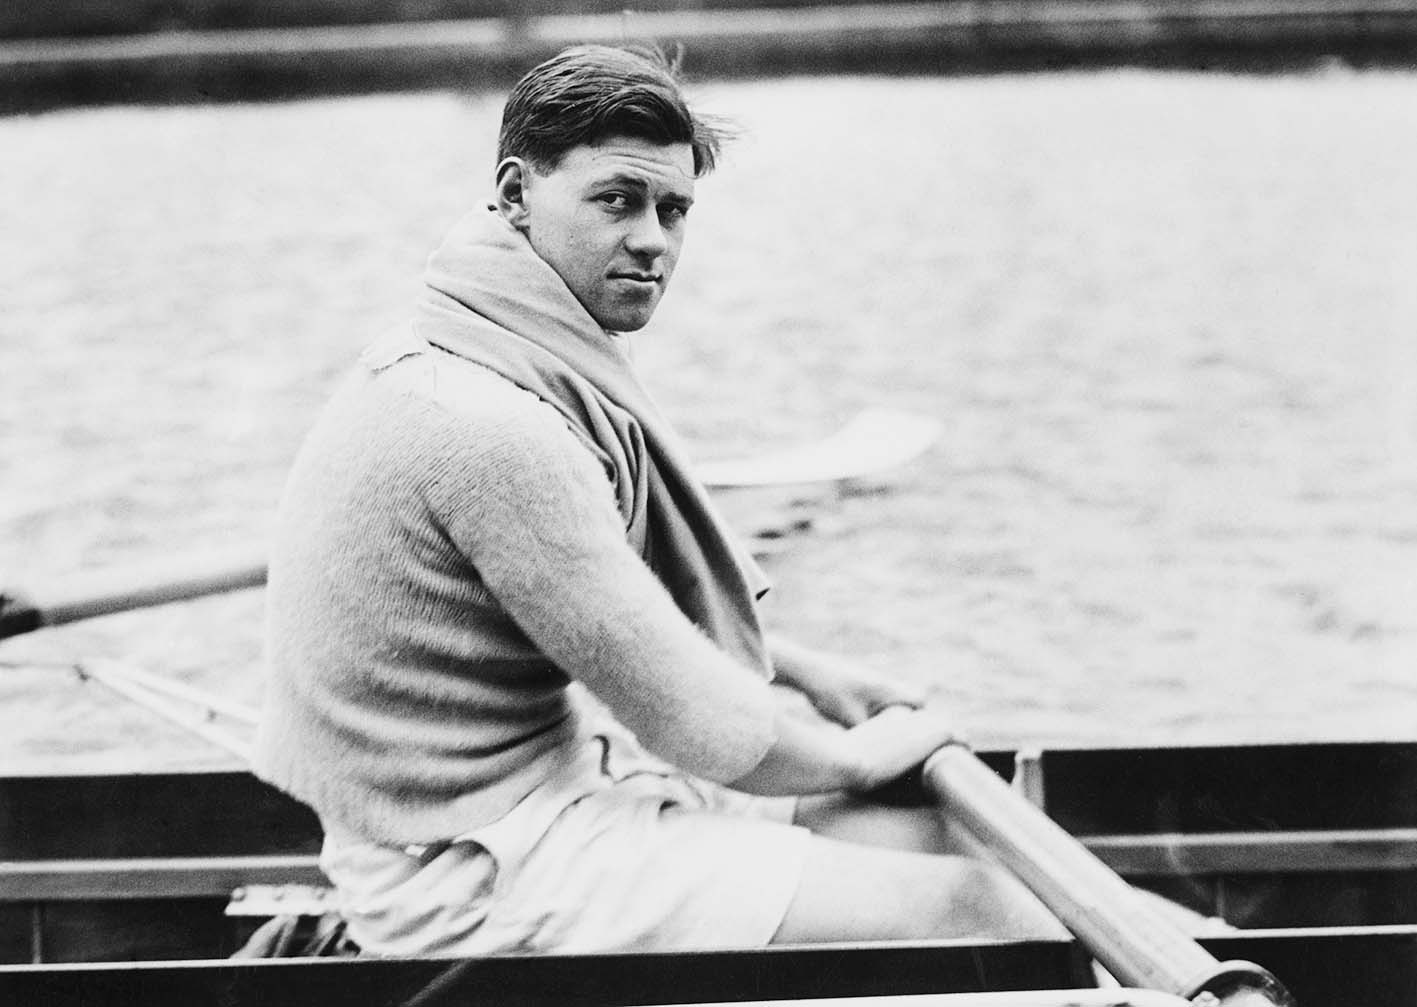 Cambridge student Ran Laurie (1915 - 1998) in training for the Oxford and Cambridge Boat Race, 28th February 1935. Laurie later won a gold medal a gold medal in the coxless pairs event at the 1948 Olympics. His youngest son is the actor and comedian Hugh Laurie. (Photo by Fox Photos/Hulton Archive/Getty Images)